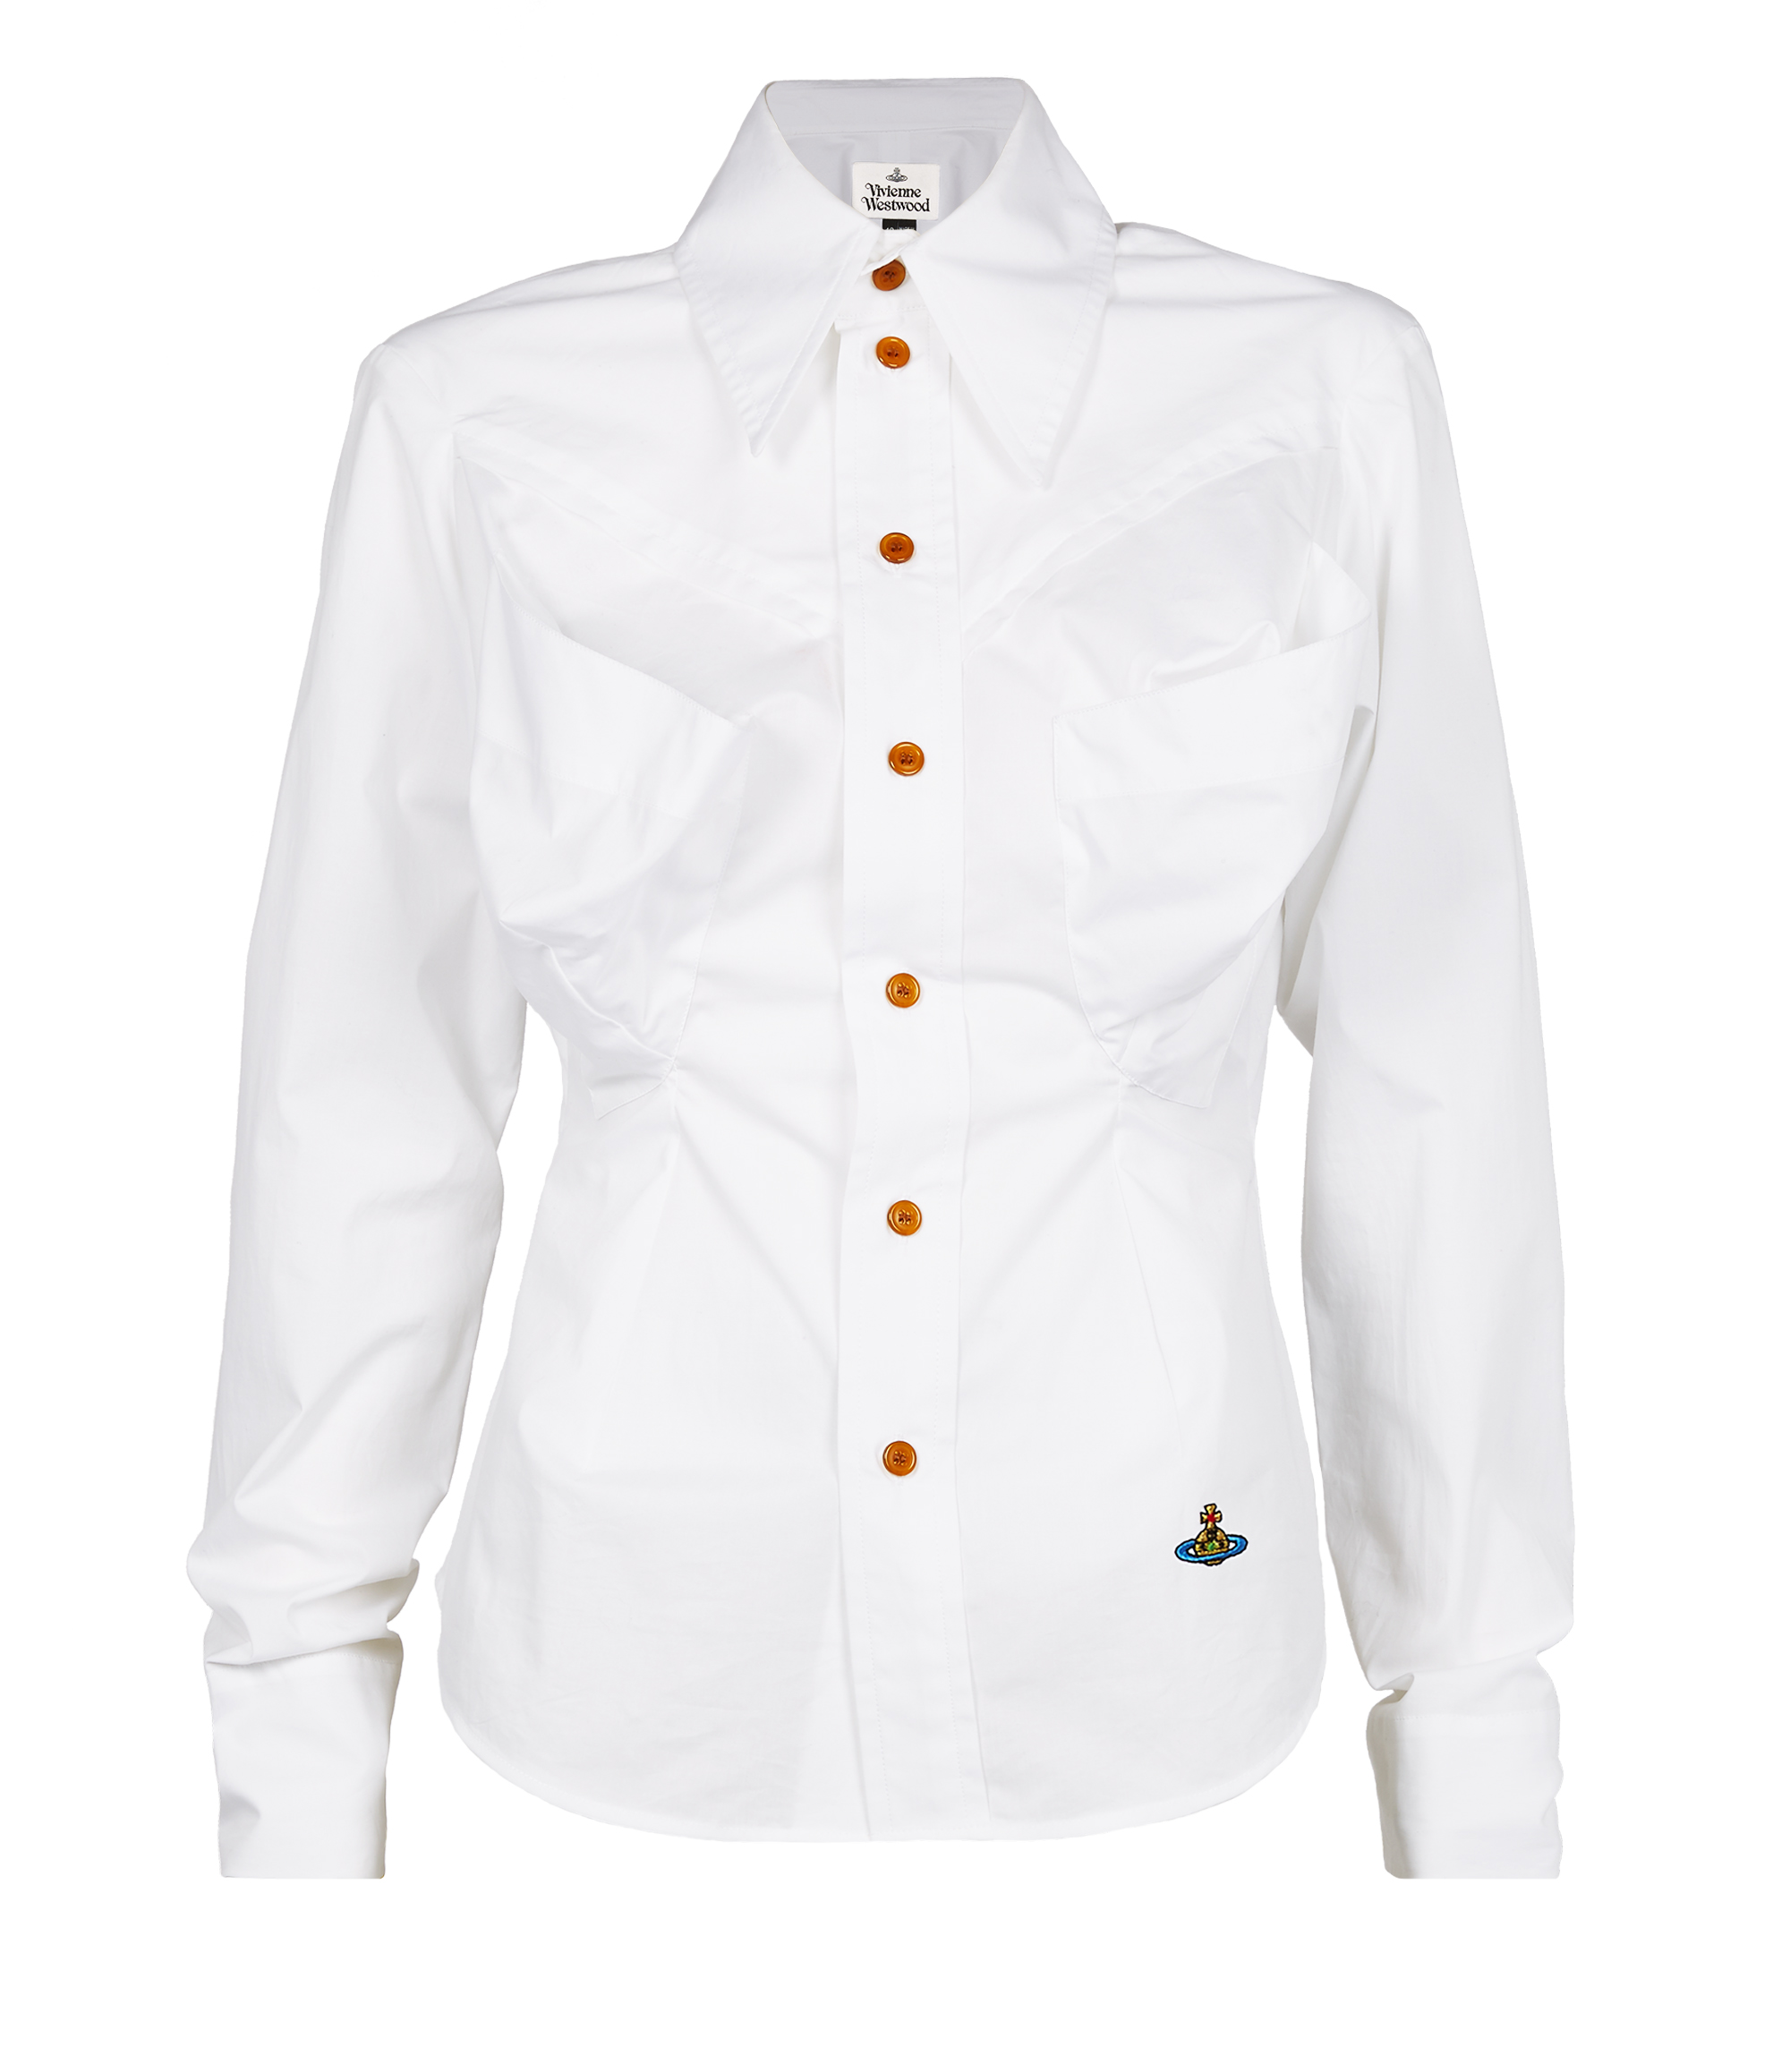 Vivienne Westwood Fire Shirt White